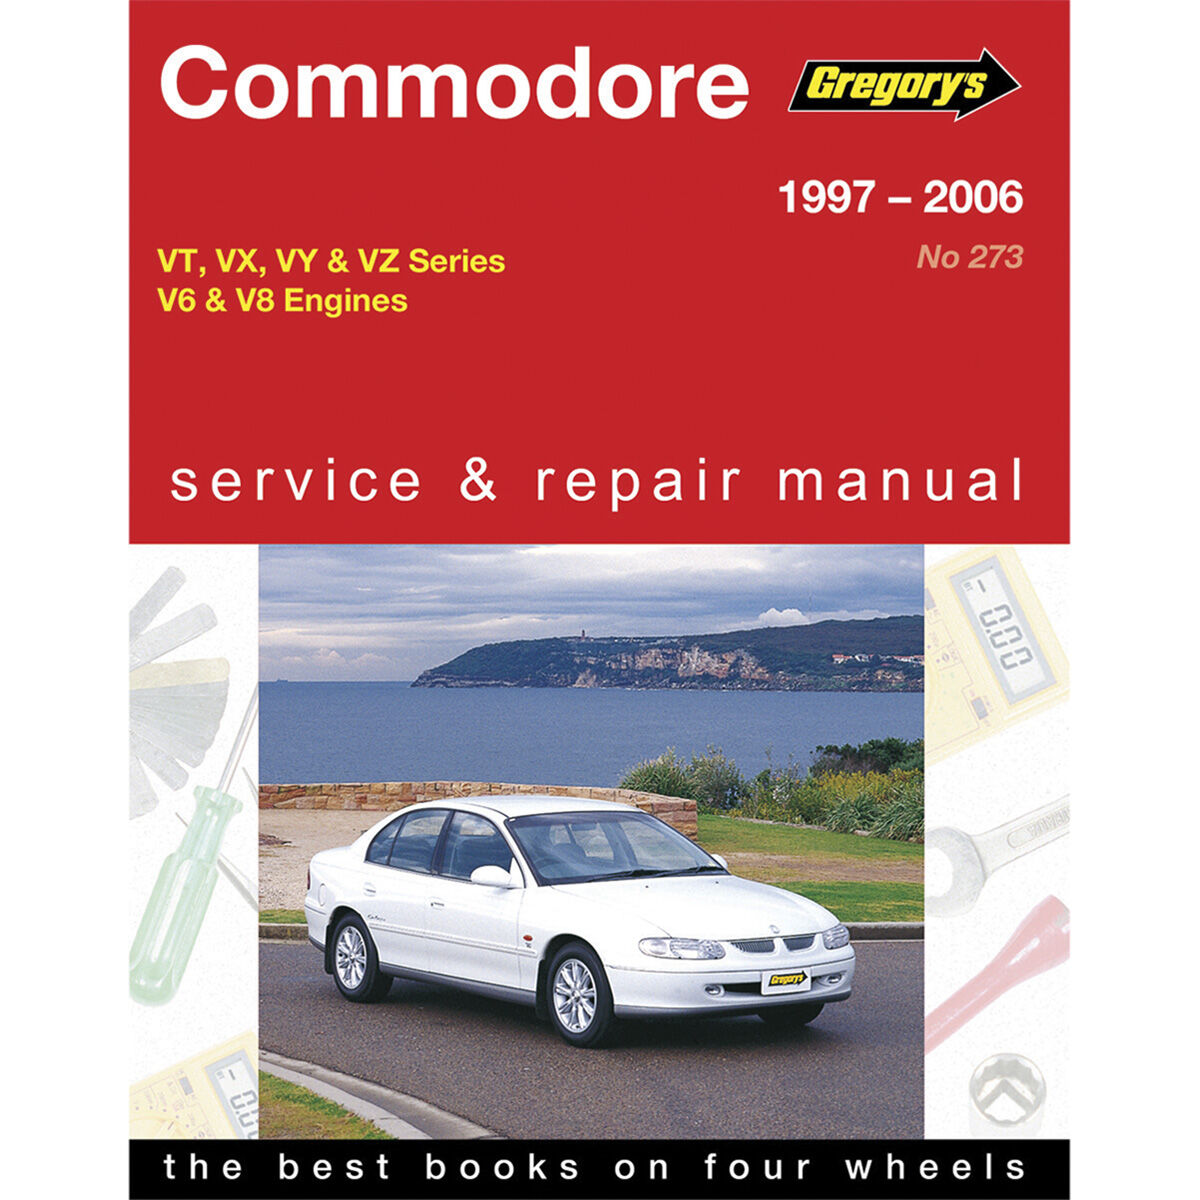 car manual for holden commodore 1997 2006 273 supercheap auto rh supercheapauto com au Holden Monaro 2008 Commodore